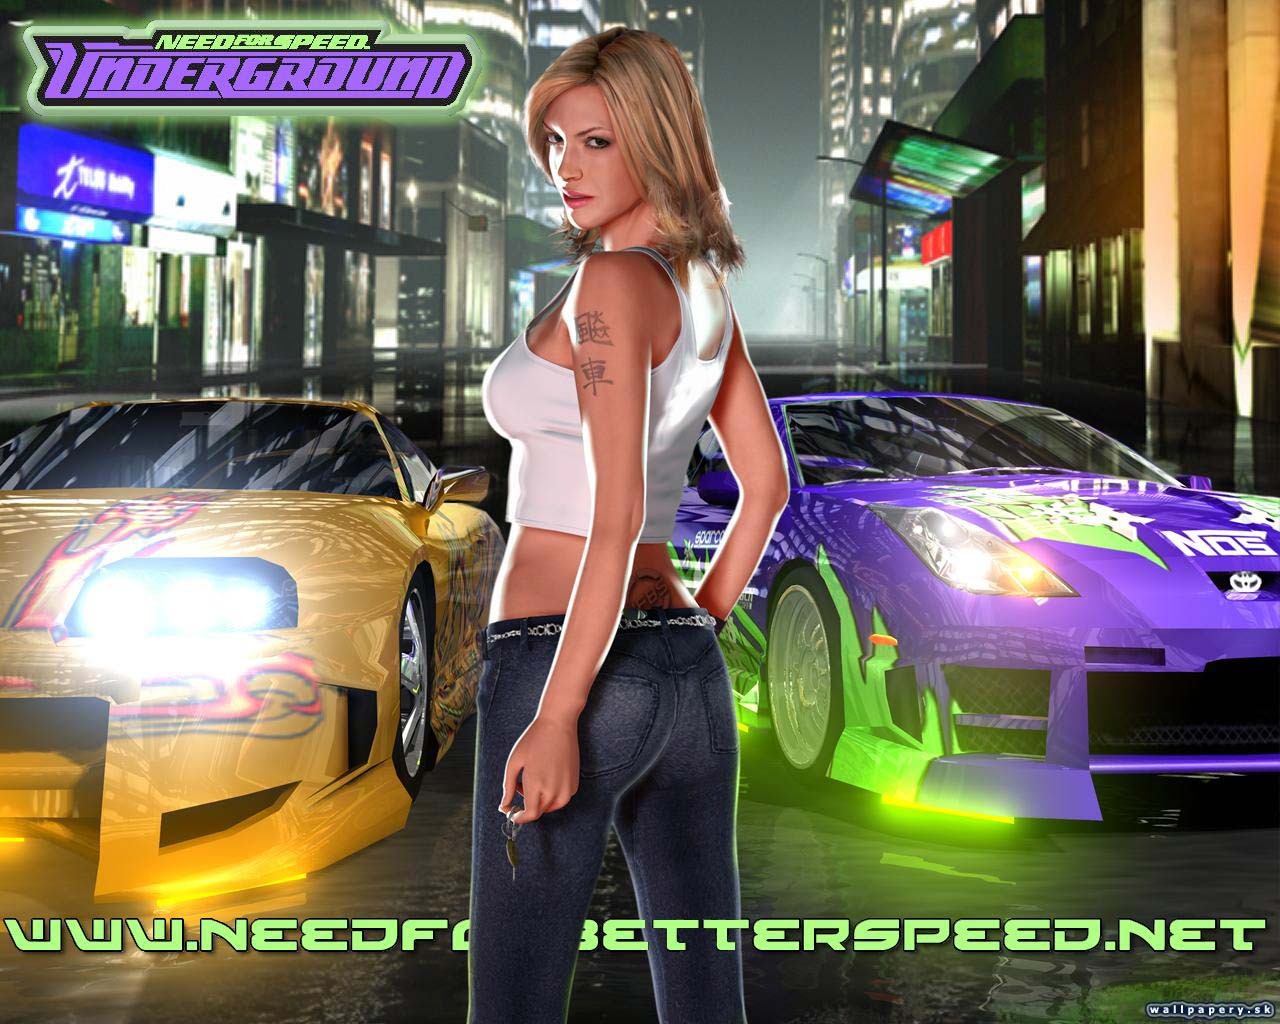 How to make girls naked on nfsu pron images